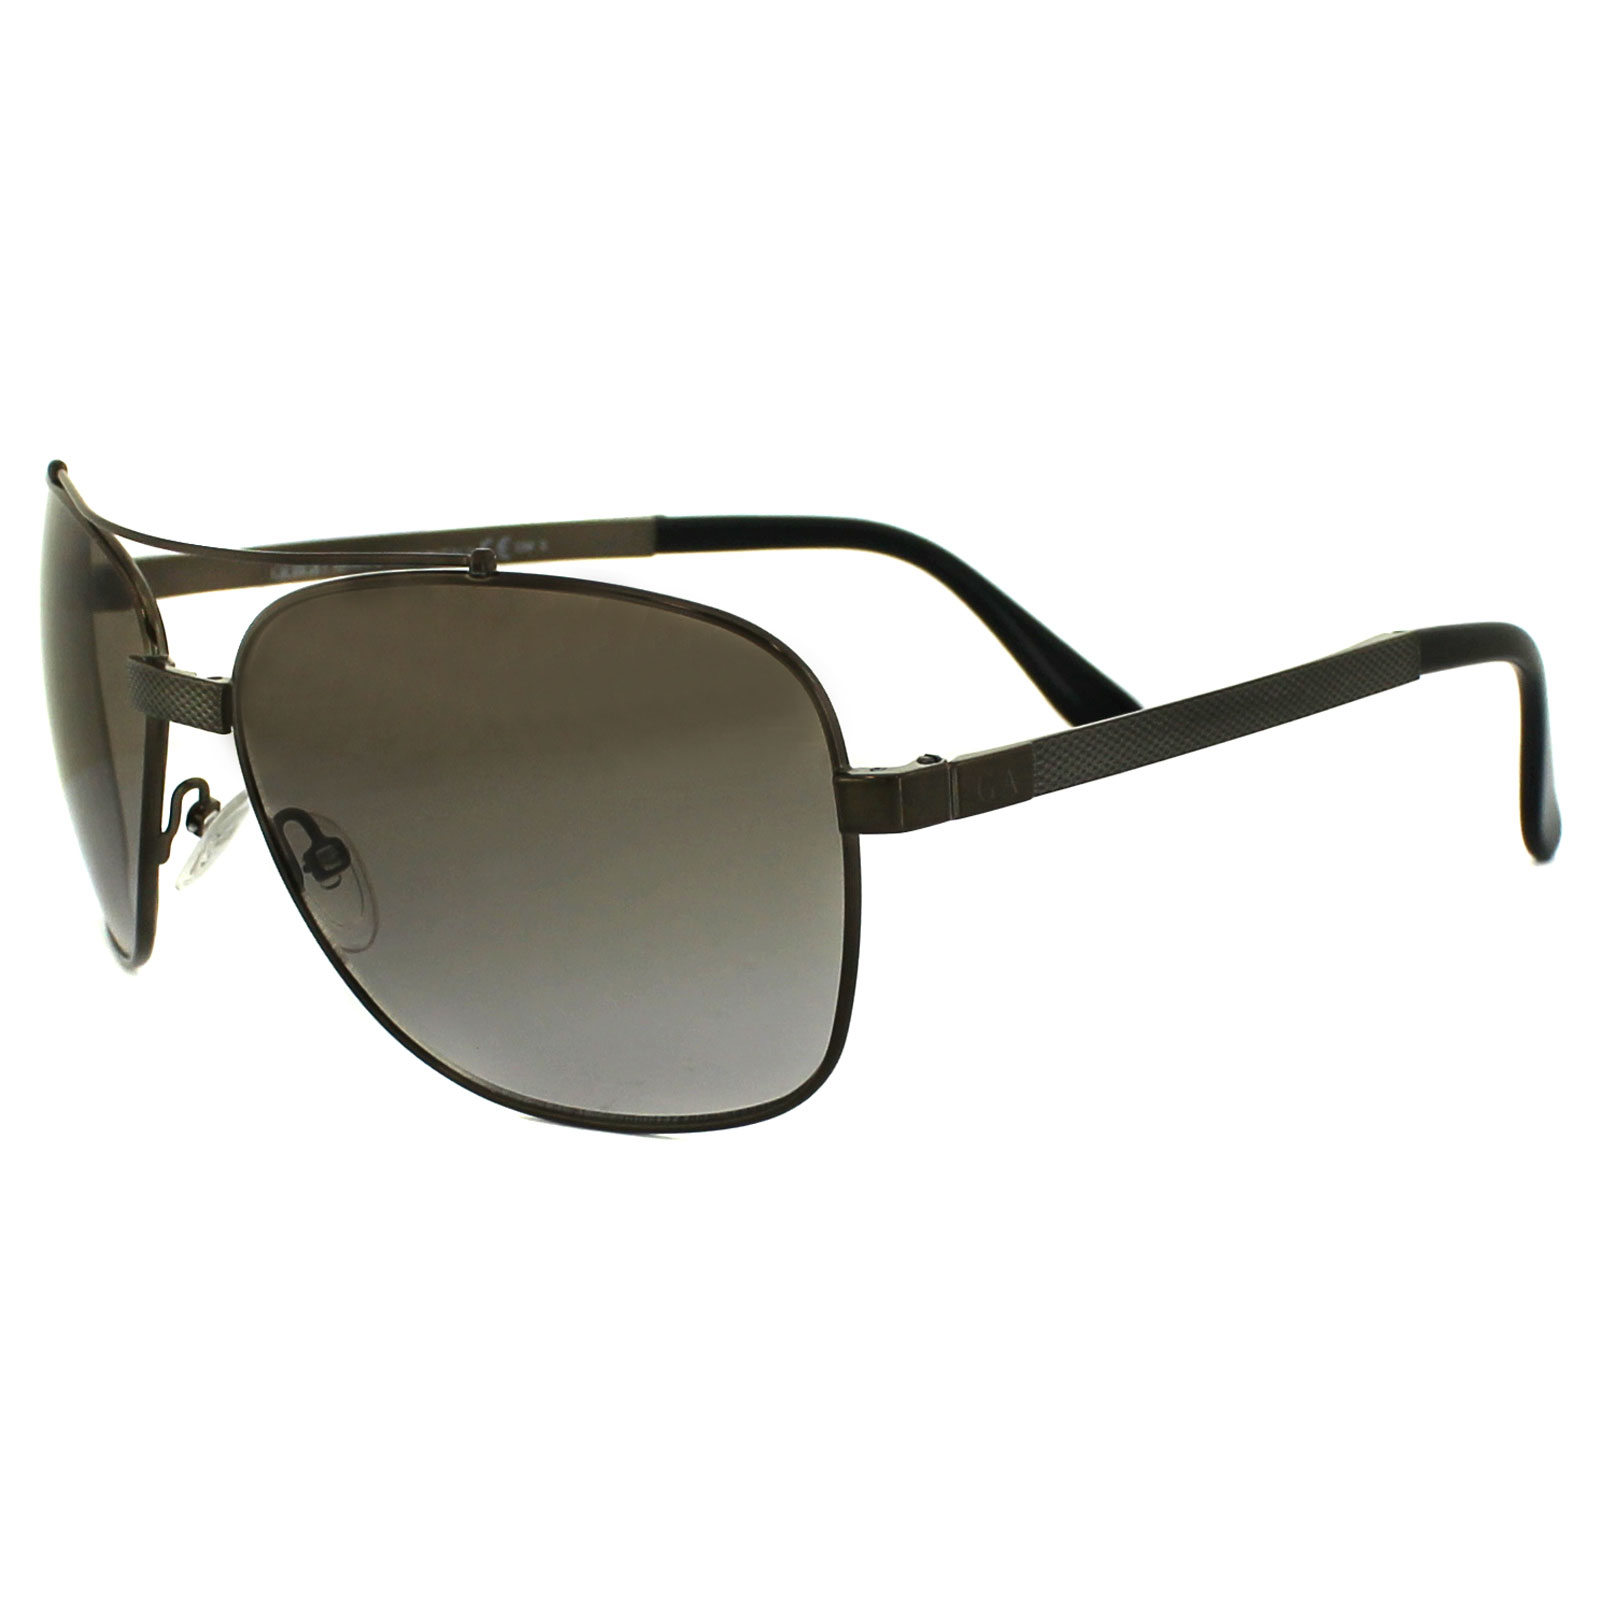 475069105a3 Details about Giorgio Armani Sunglasses 917 XBC 81 Brown Brown Grey Gradient